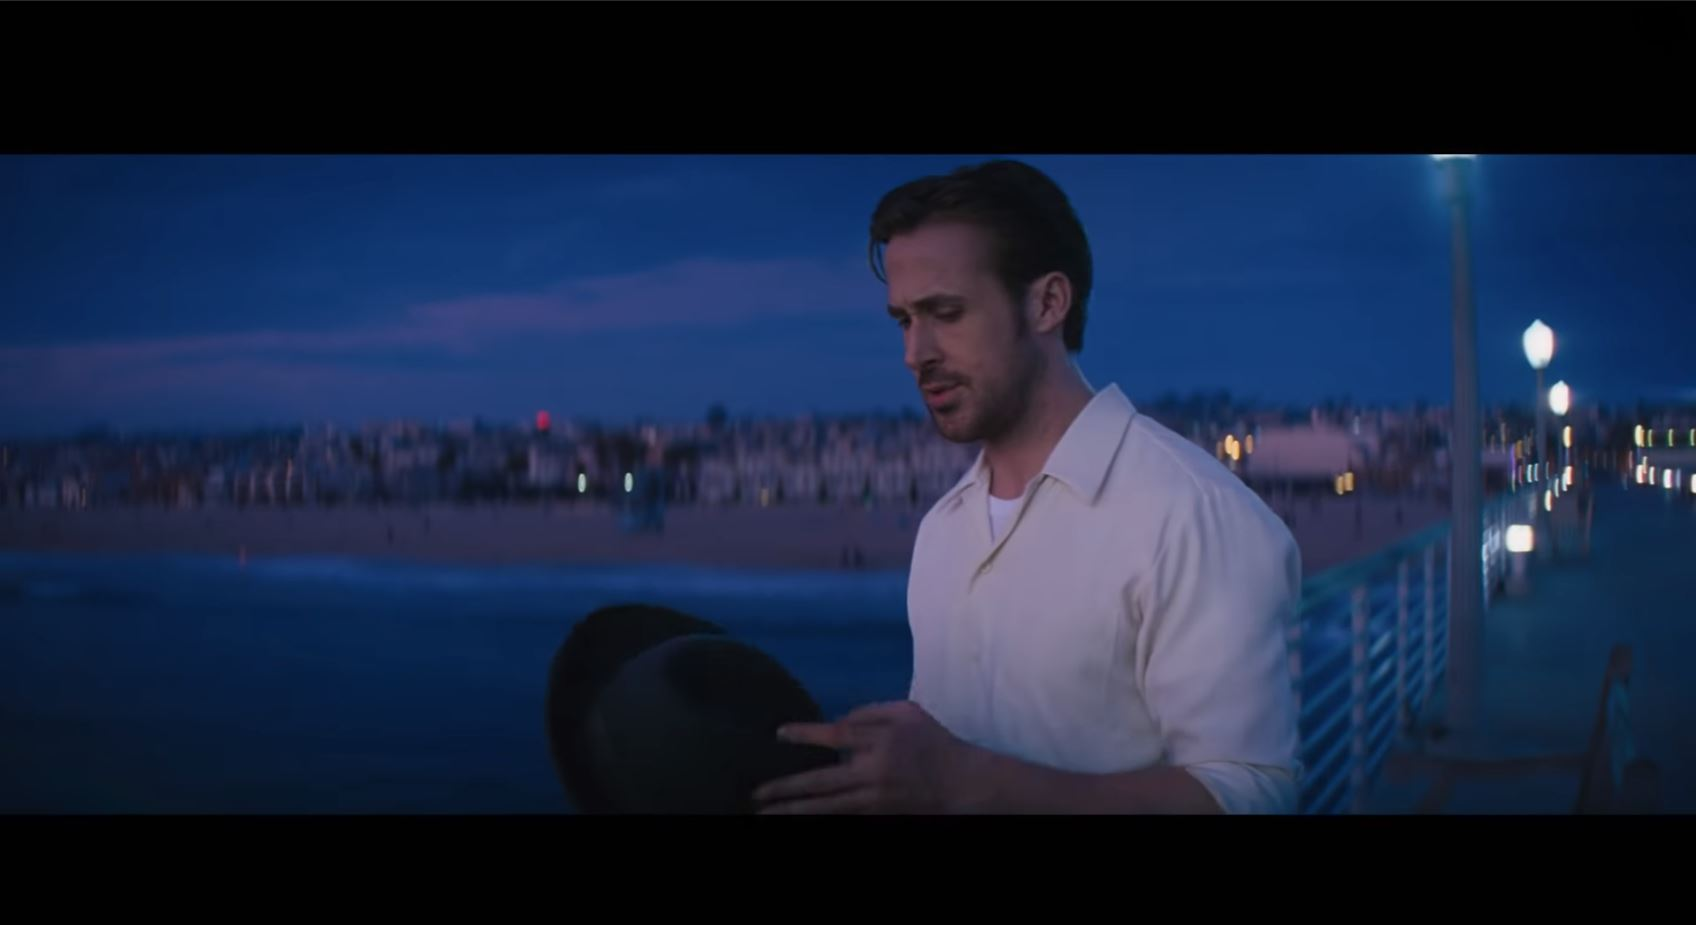 Depth in a 2D image - Ryan Gosling framed up with leading lines